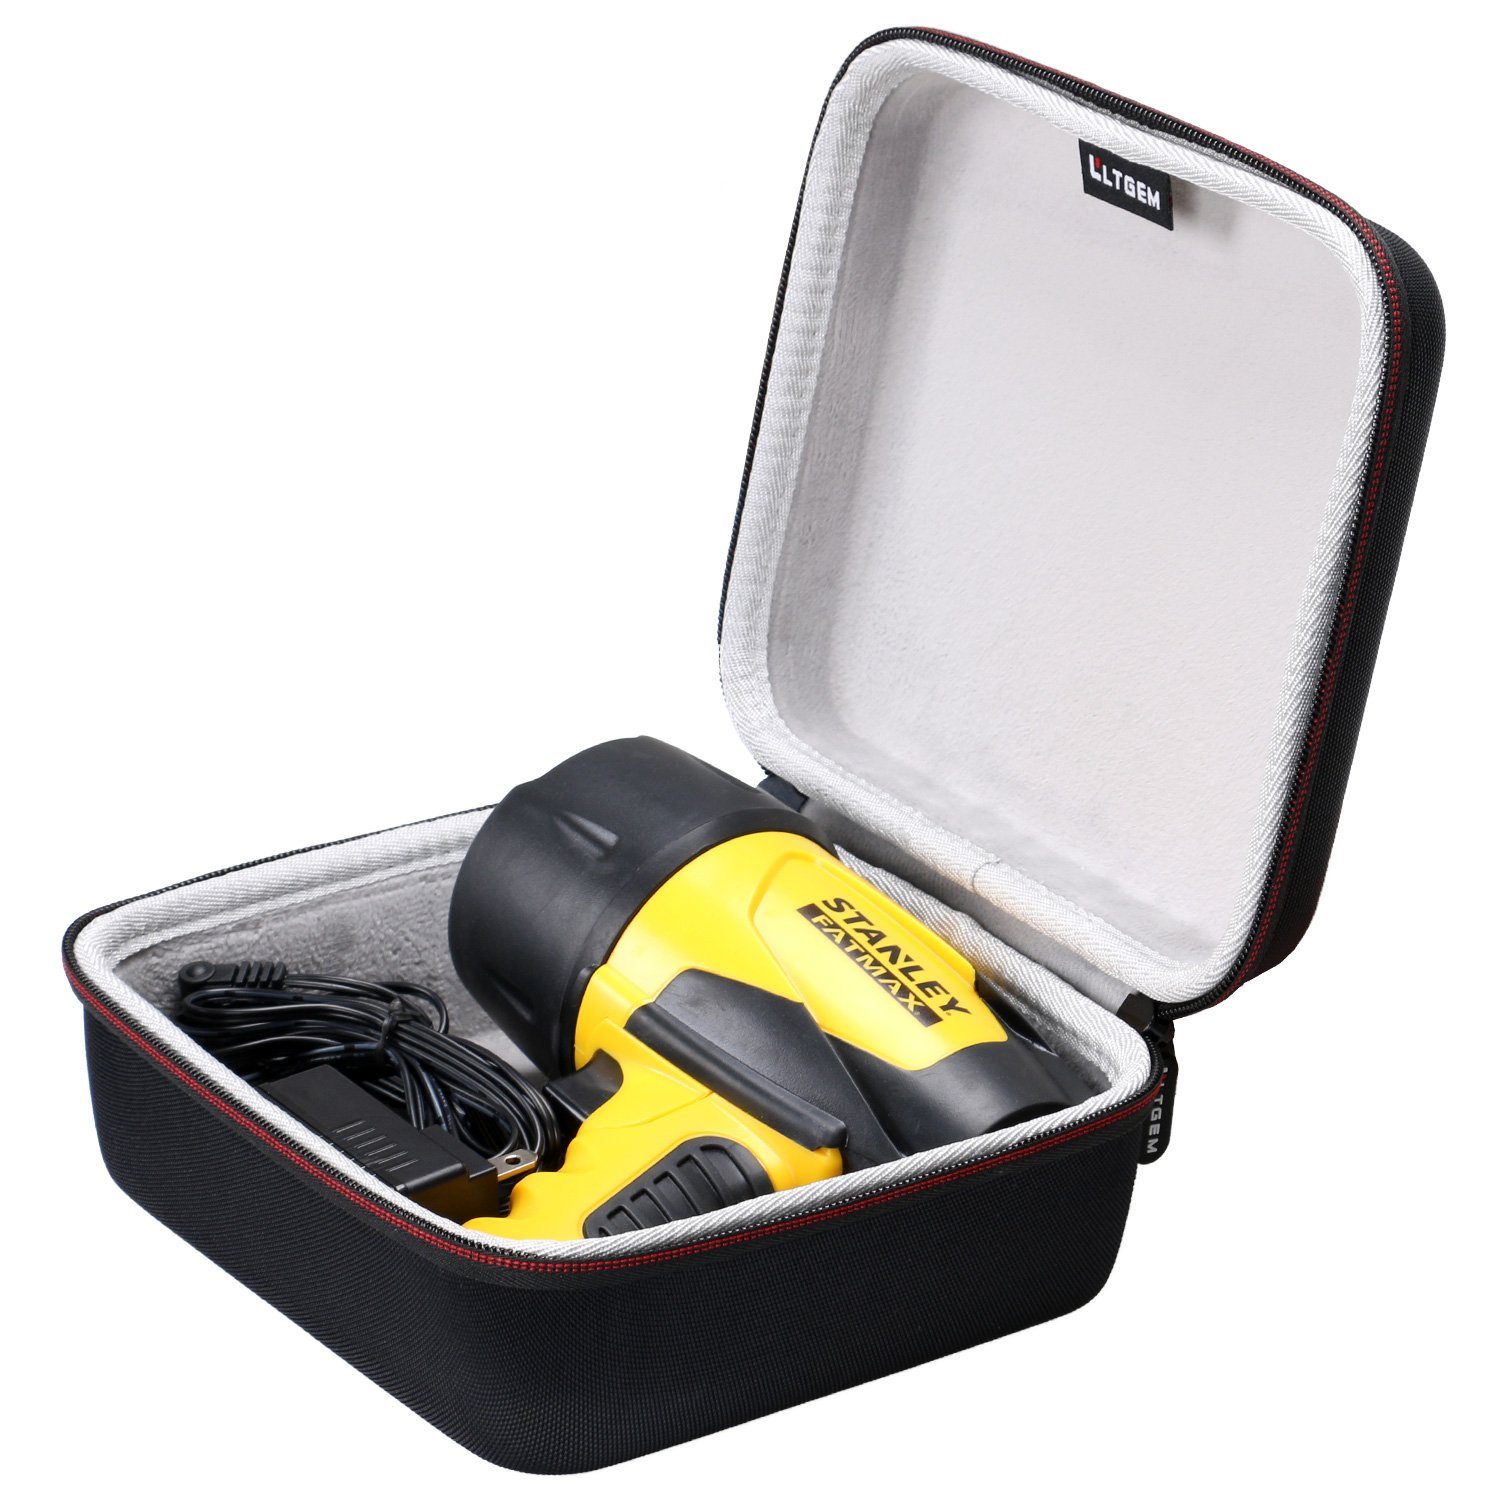 Stanley 5 Watt Led Rechargeable Spotlight: LTGEM Case For STANLEY FATMAX FL5W10 Waterproof LED